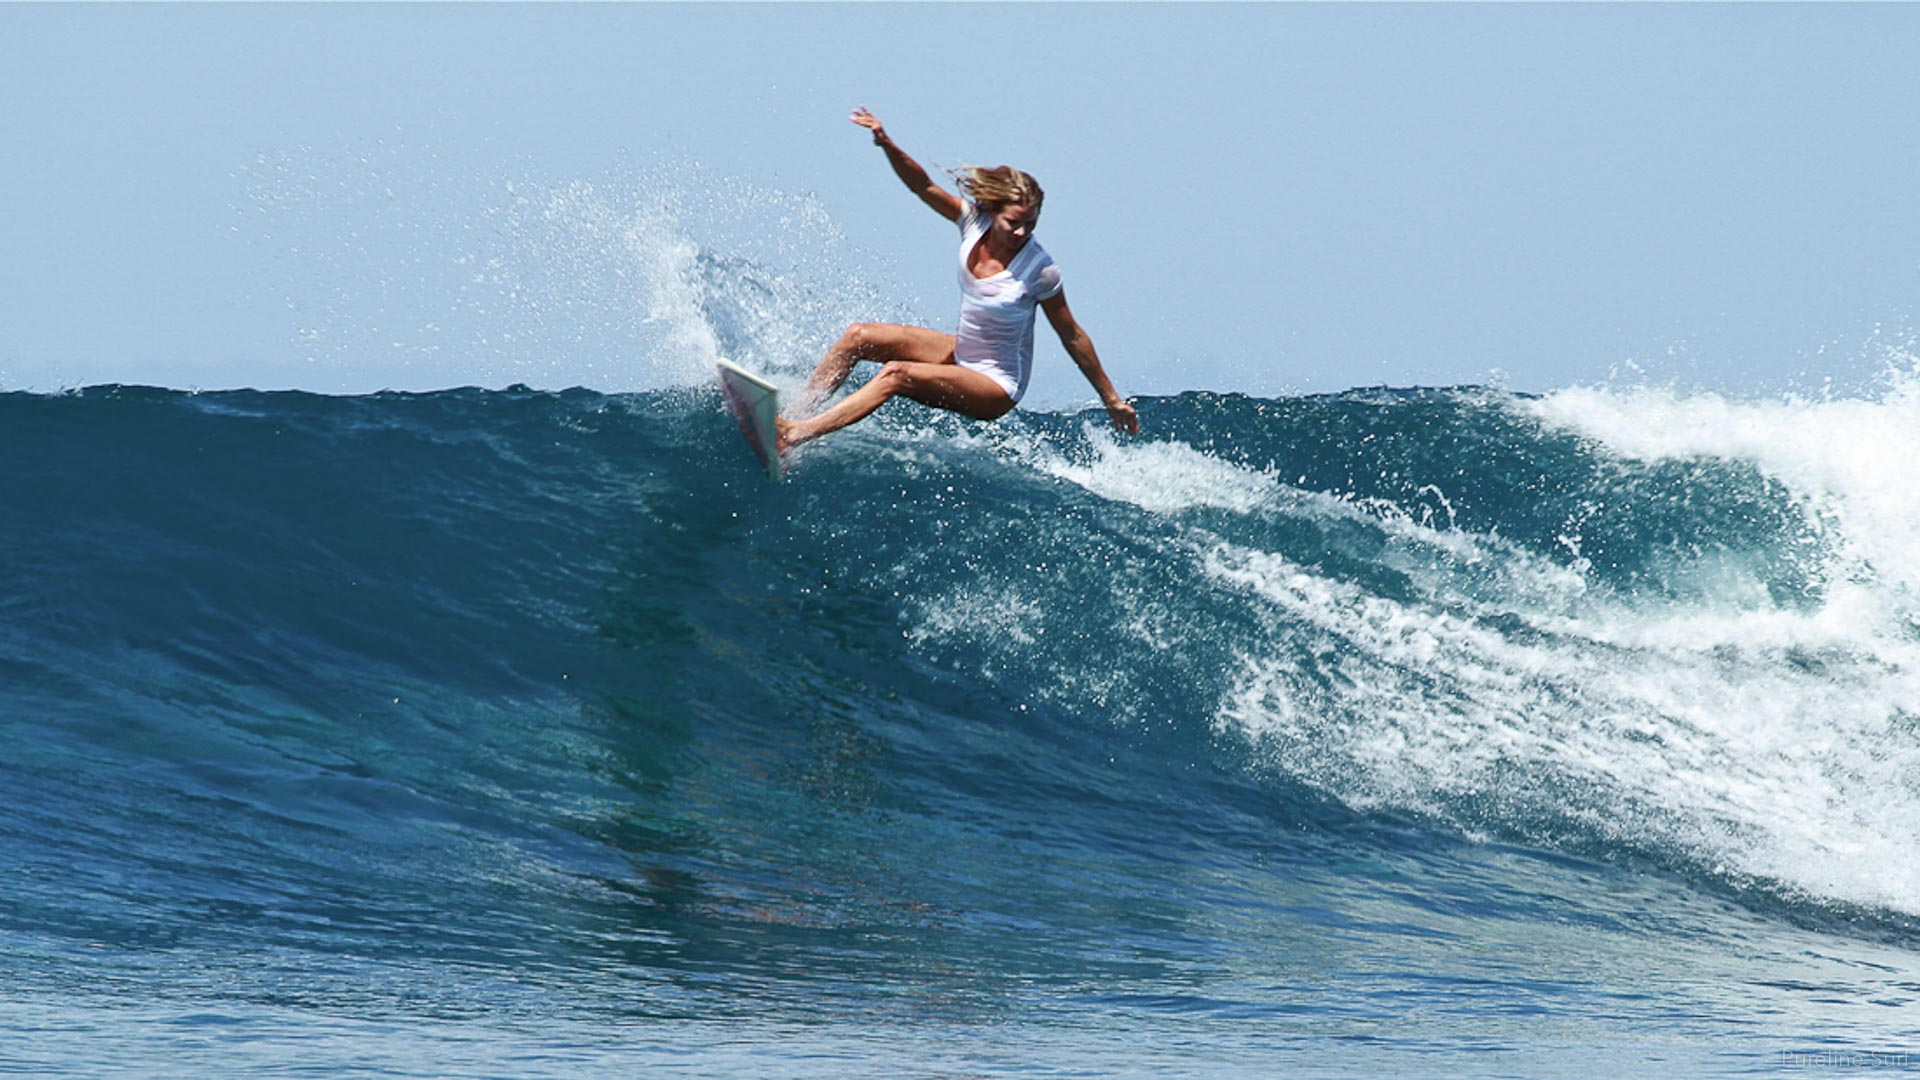 Great forehand turn on a tropical wave. Pureline Surf private surf coaching and surf guiding.